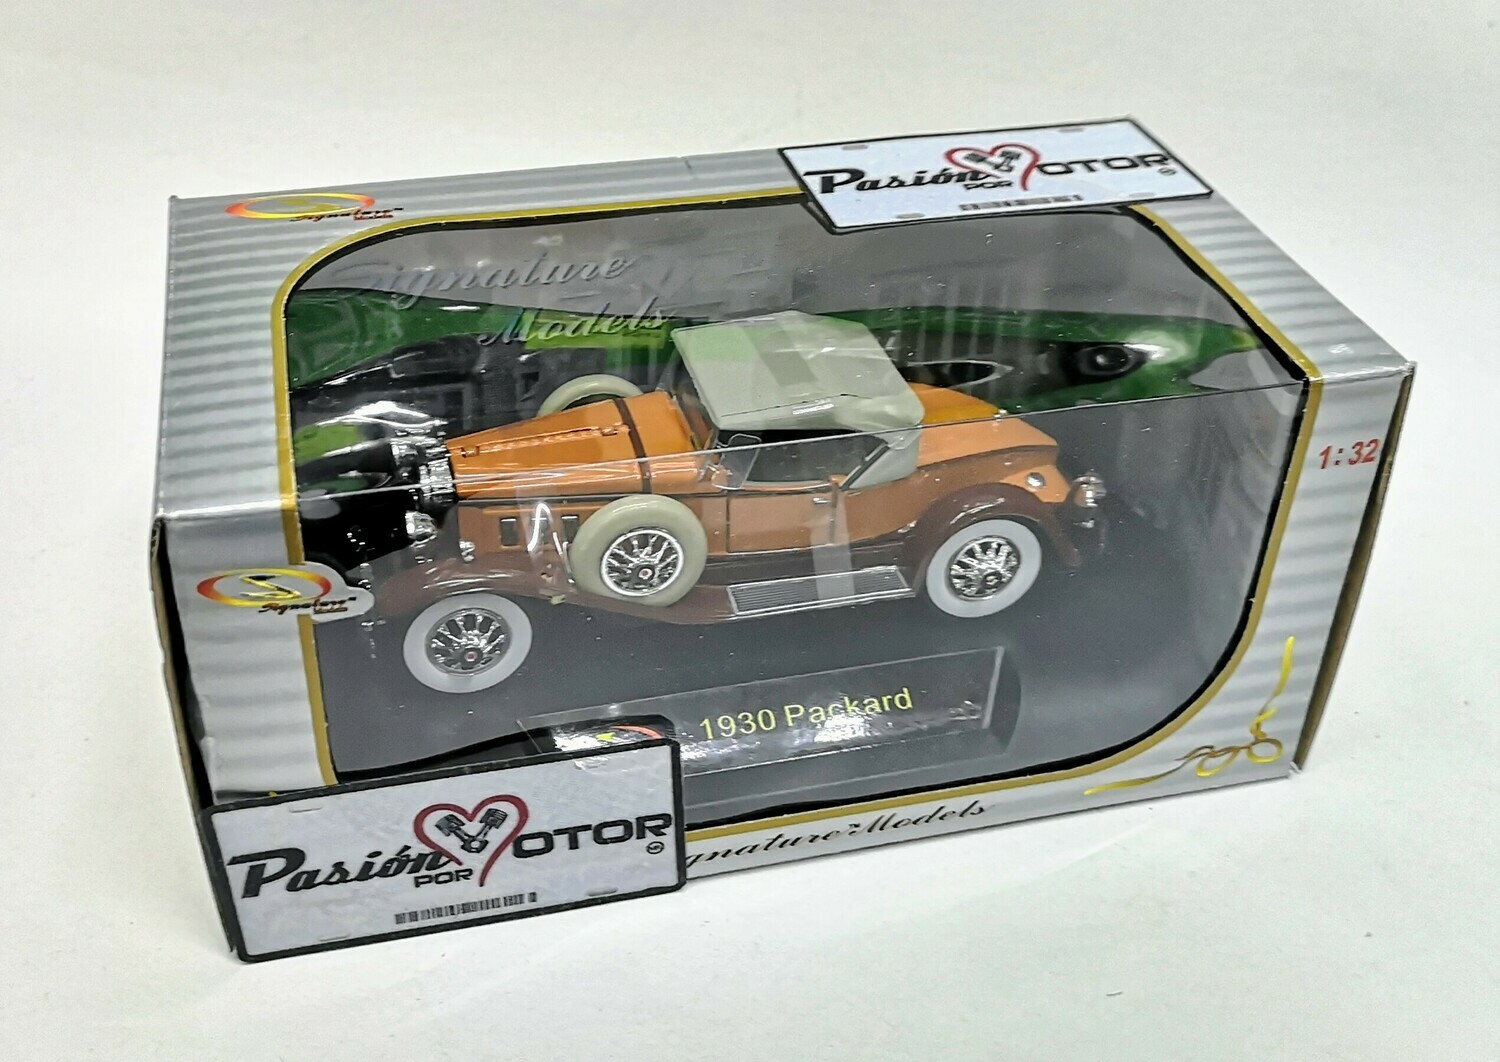 1:32 Packard 734 Boattail Speedster Roadster 1930 Naranja C Cafe Signature Models Carcacha C Caja